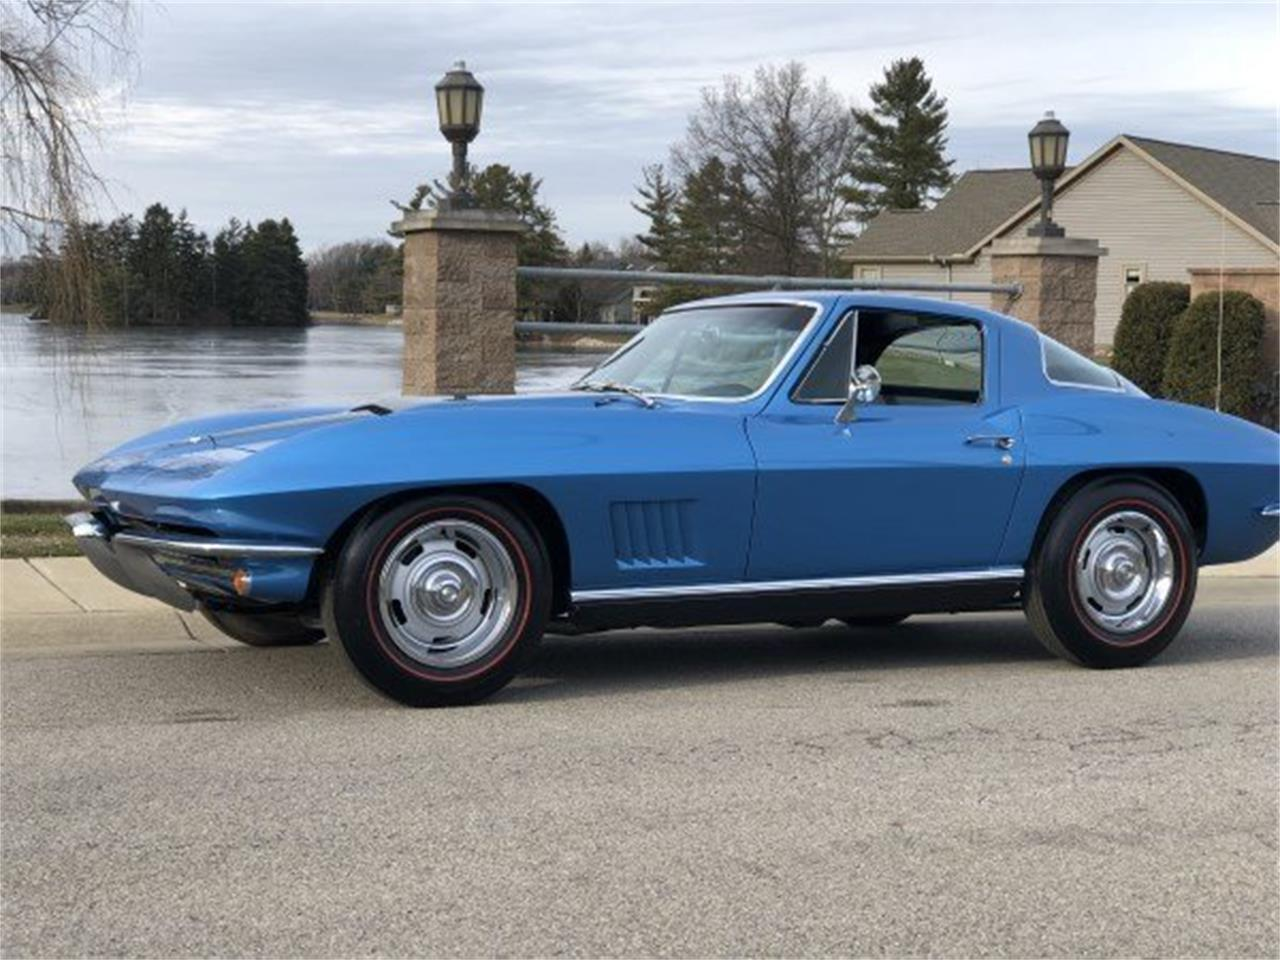 Large Picture of '67 Corvette located in North Carolina Auction Vehicle Offered by GAA Classic Cars Auctions - MPZC